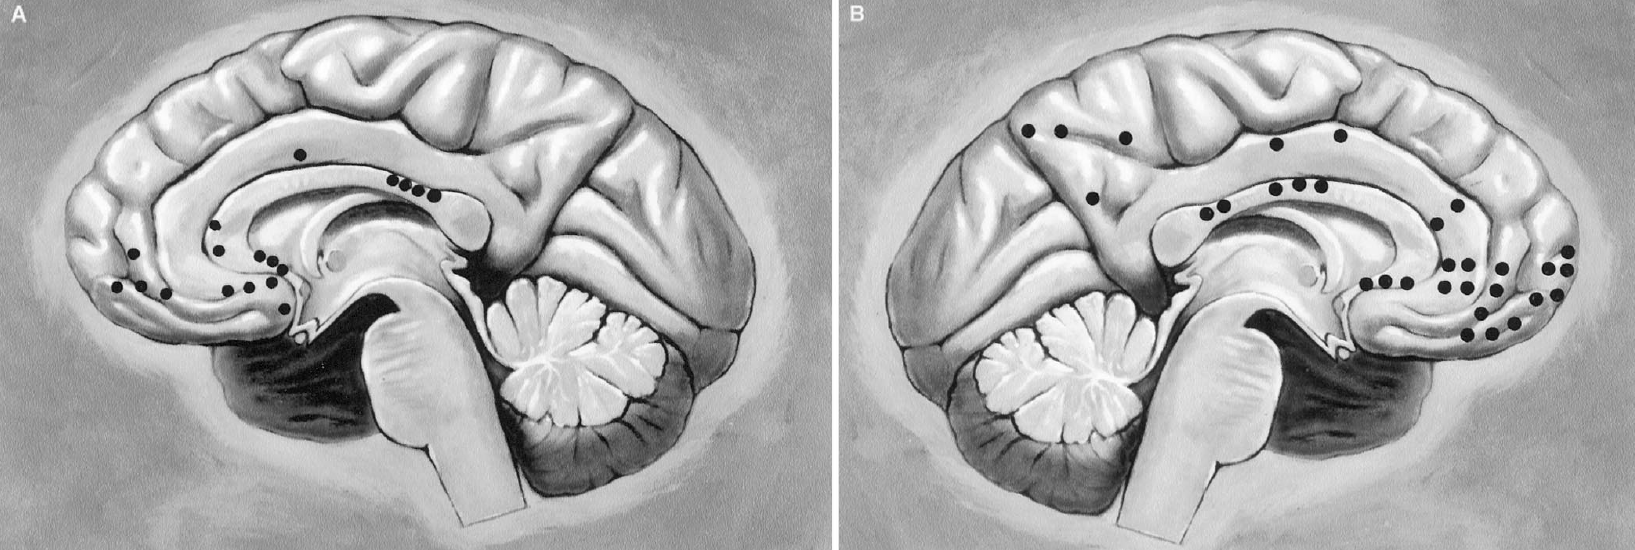 FIGURE 2.28. Medial surface of cerebral hemispheres. A, right hemisphere; B, left hemisphere. Black dots indicate points where a branch from the opposite anterior cerebral artery arrives to supply the hemisphere shown. Based on the right and left hemispheres from 25 brains (from, Perlmutter D, Rhoton AL Jr: Microsurgical anatomy of the distal anterior cerebral artery. J Neurosurg 49:204–228, 1978 [27]).